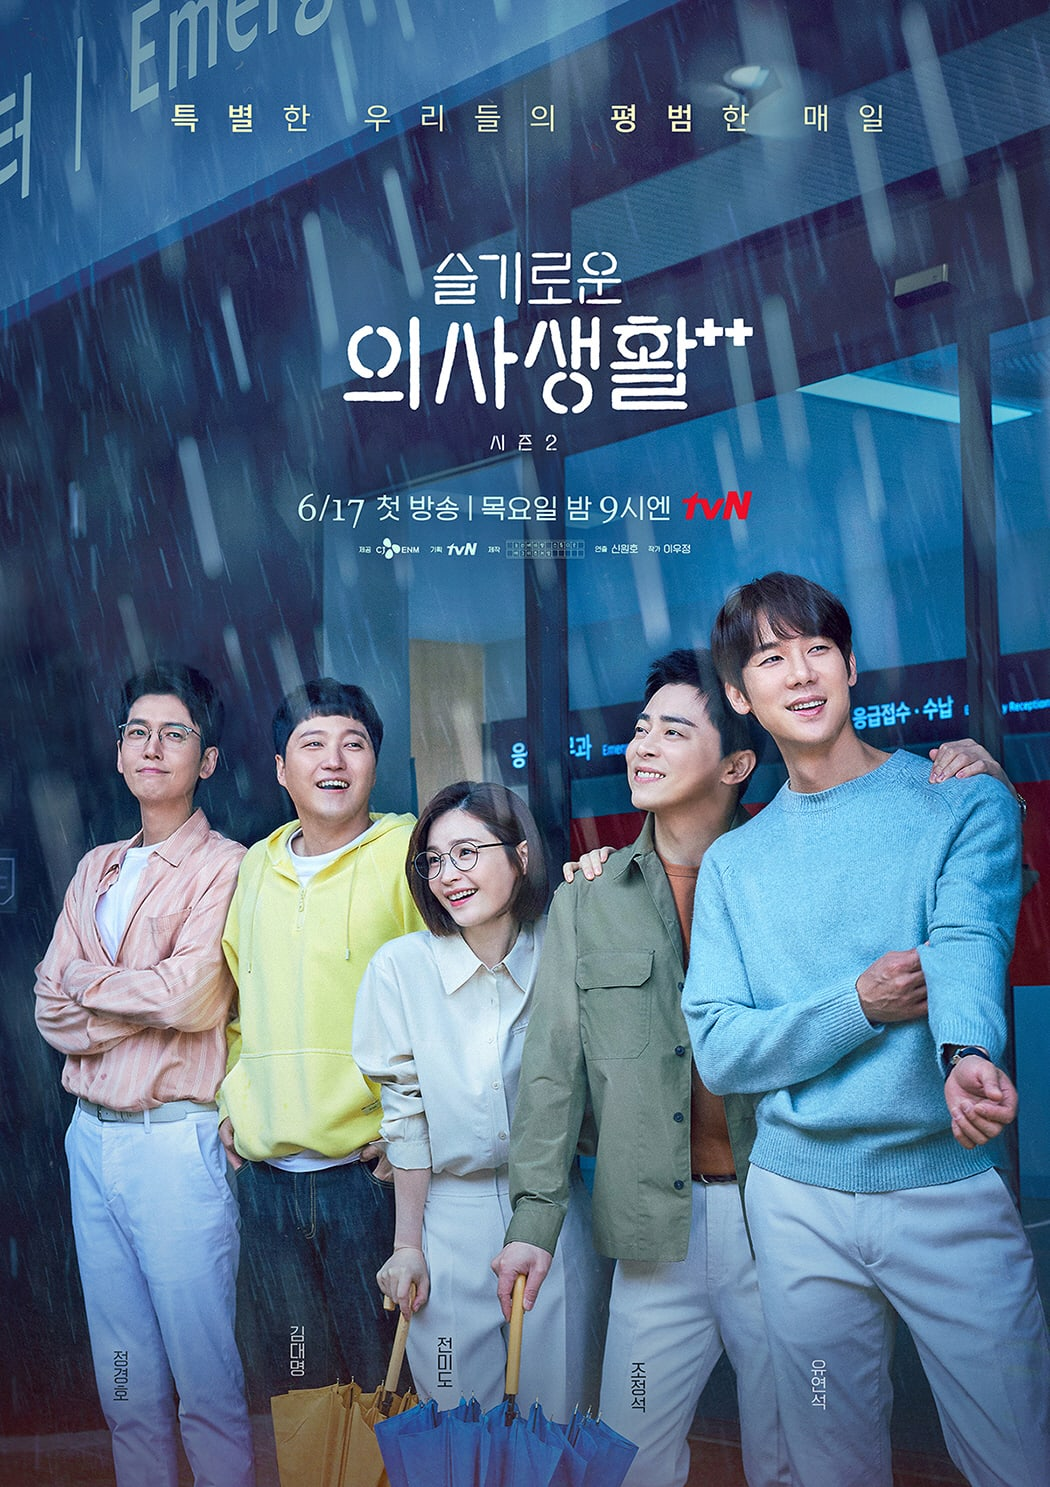 Hospital Playlist will not air an episode on July 29